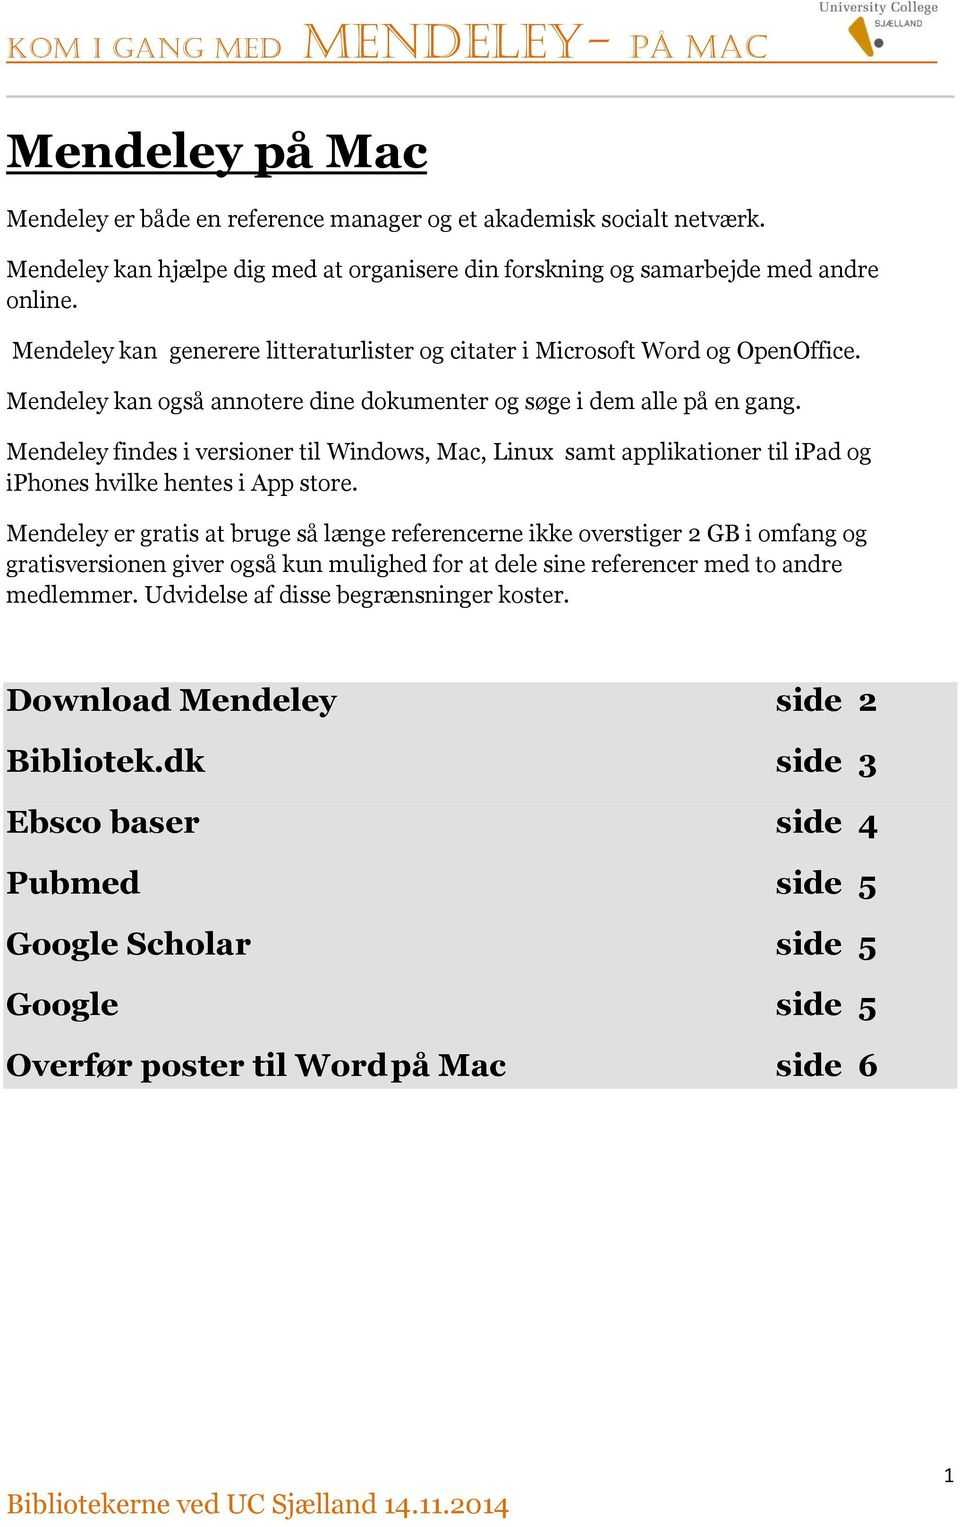 Mendeley findes i versioner til Windows, Mac, Linux samt applikationer til ipad og iphones hvilke hentes i App store.